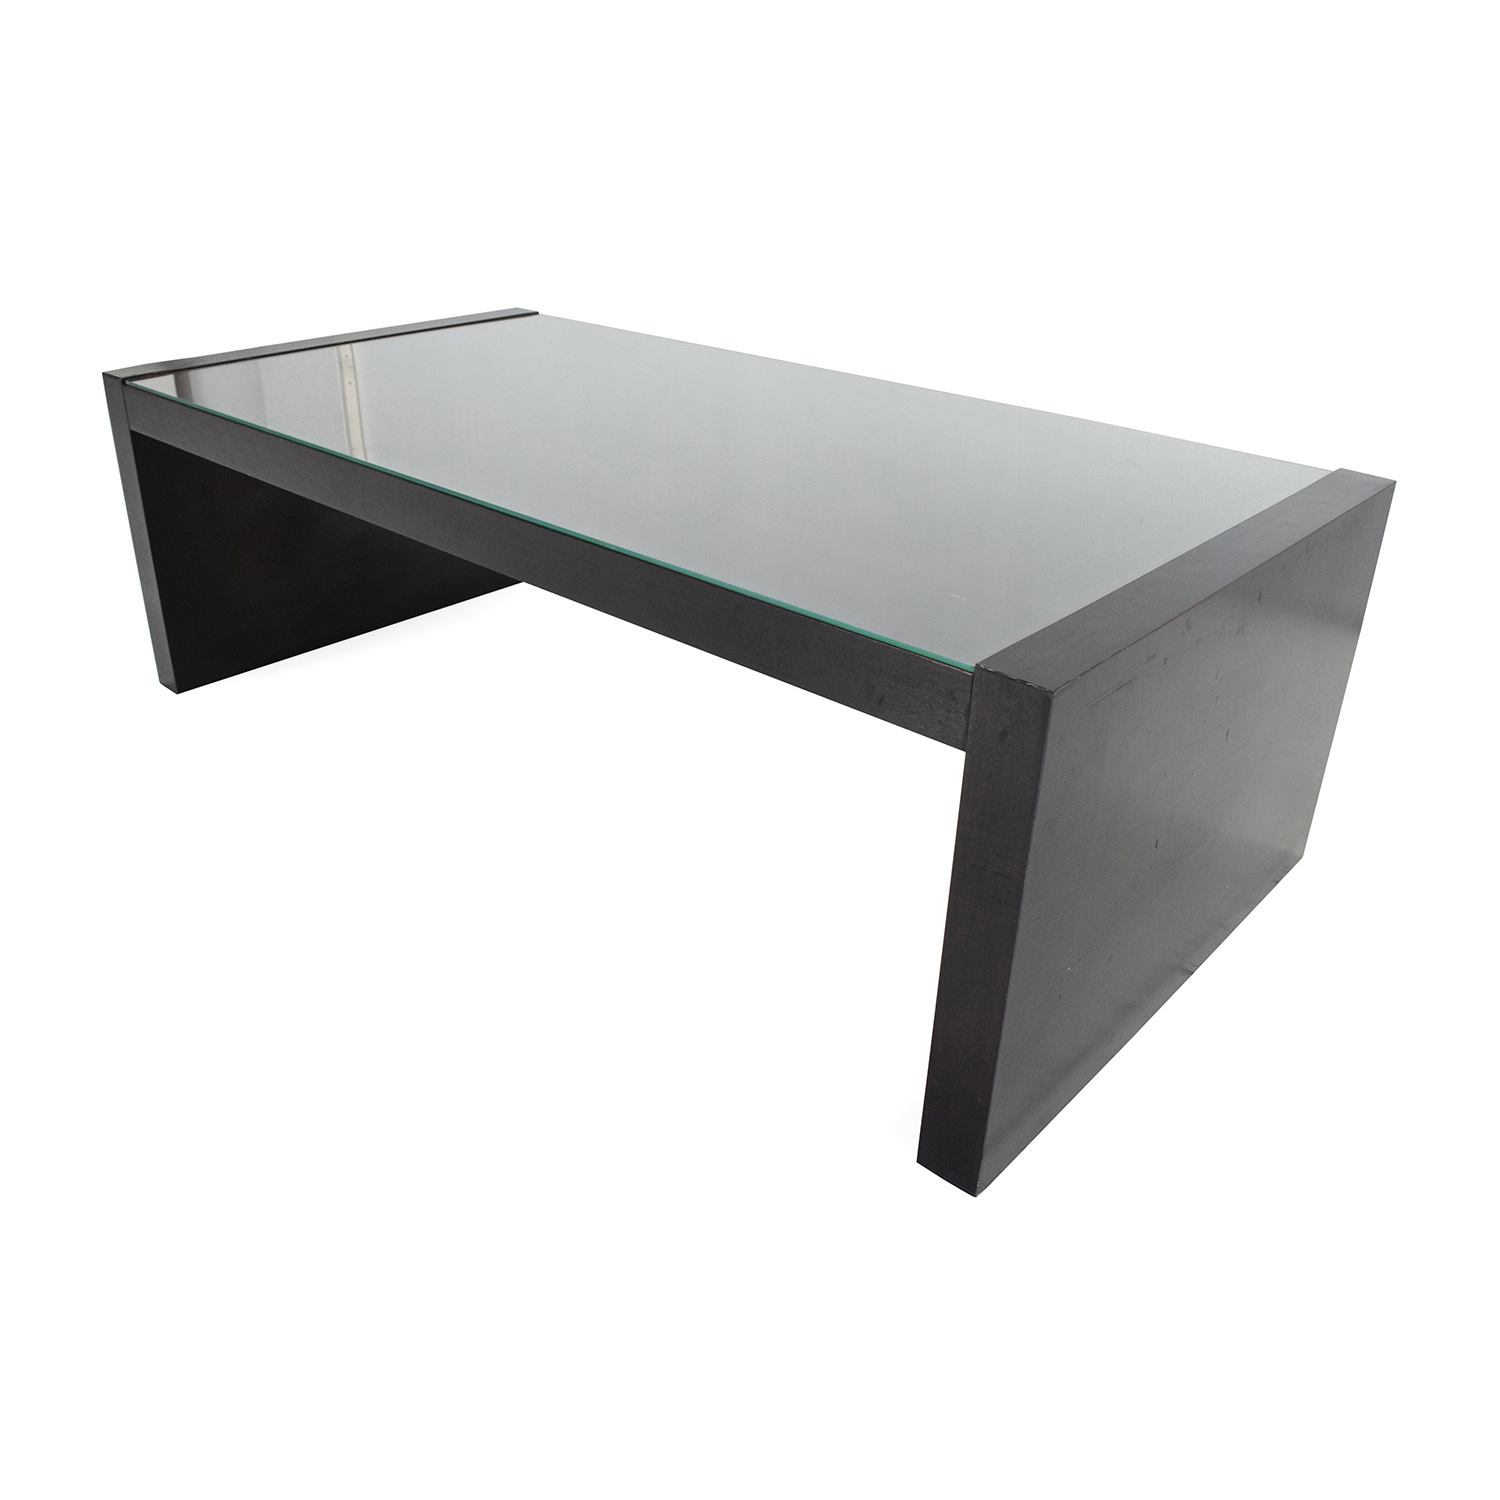 66% OFF Ikea Expedit Coffee Table Tables